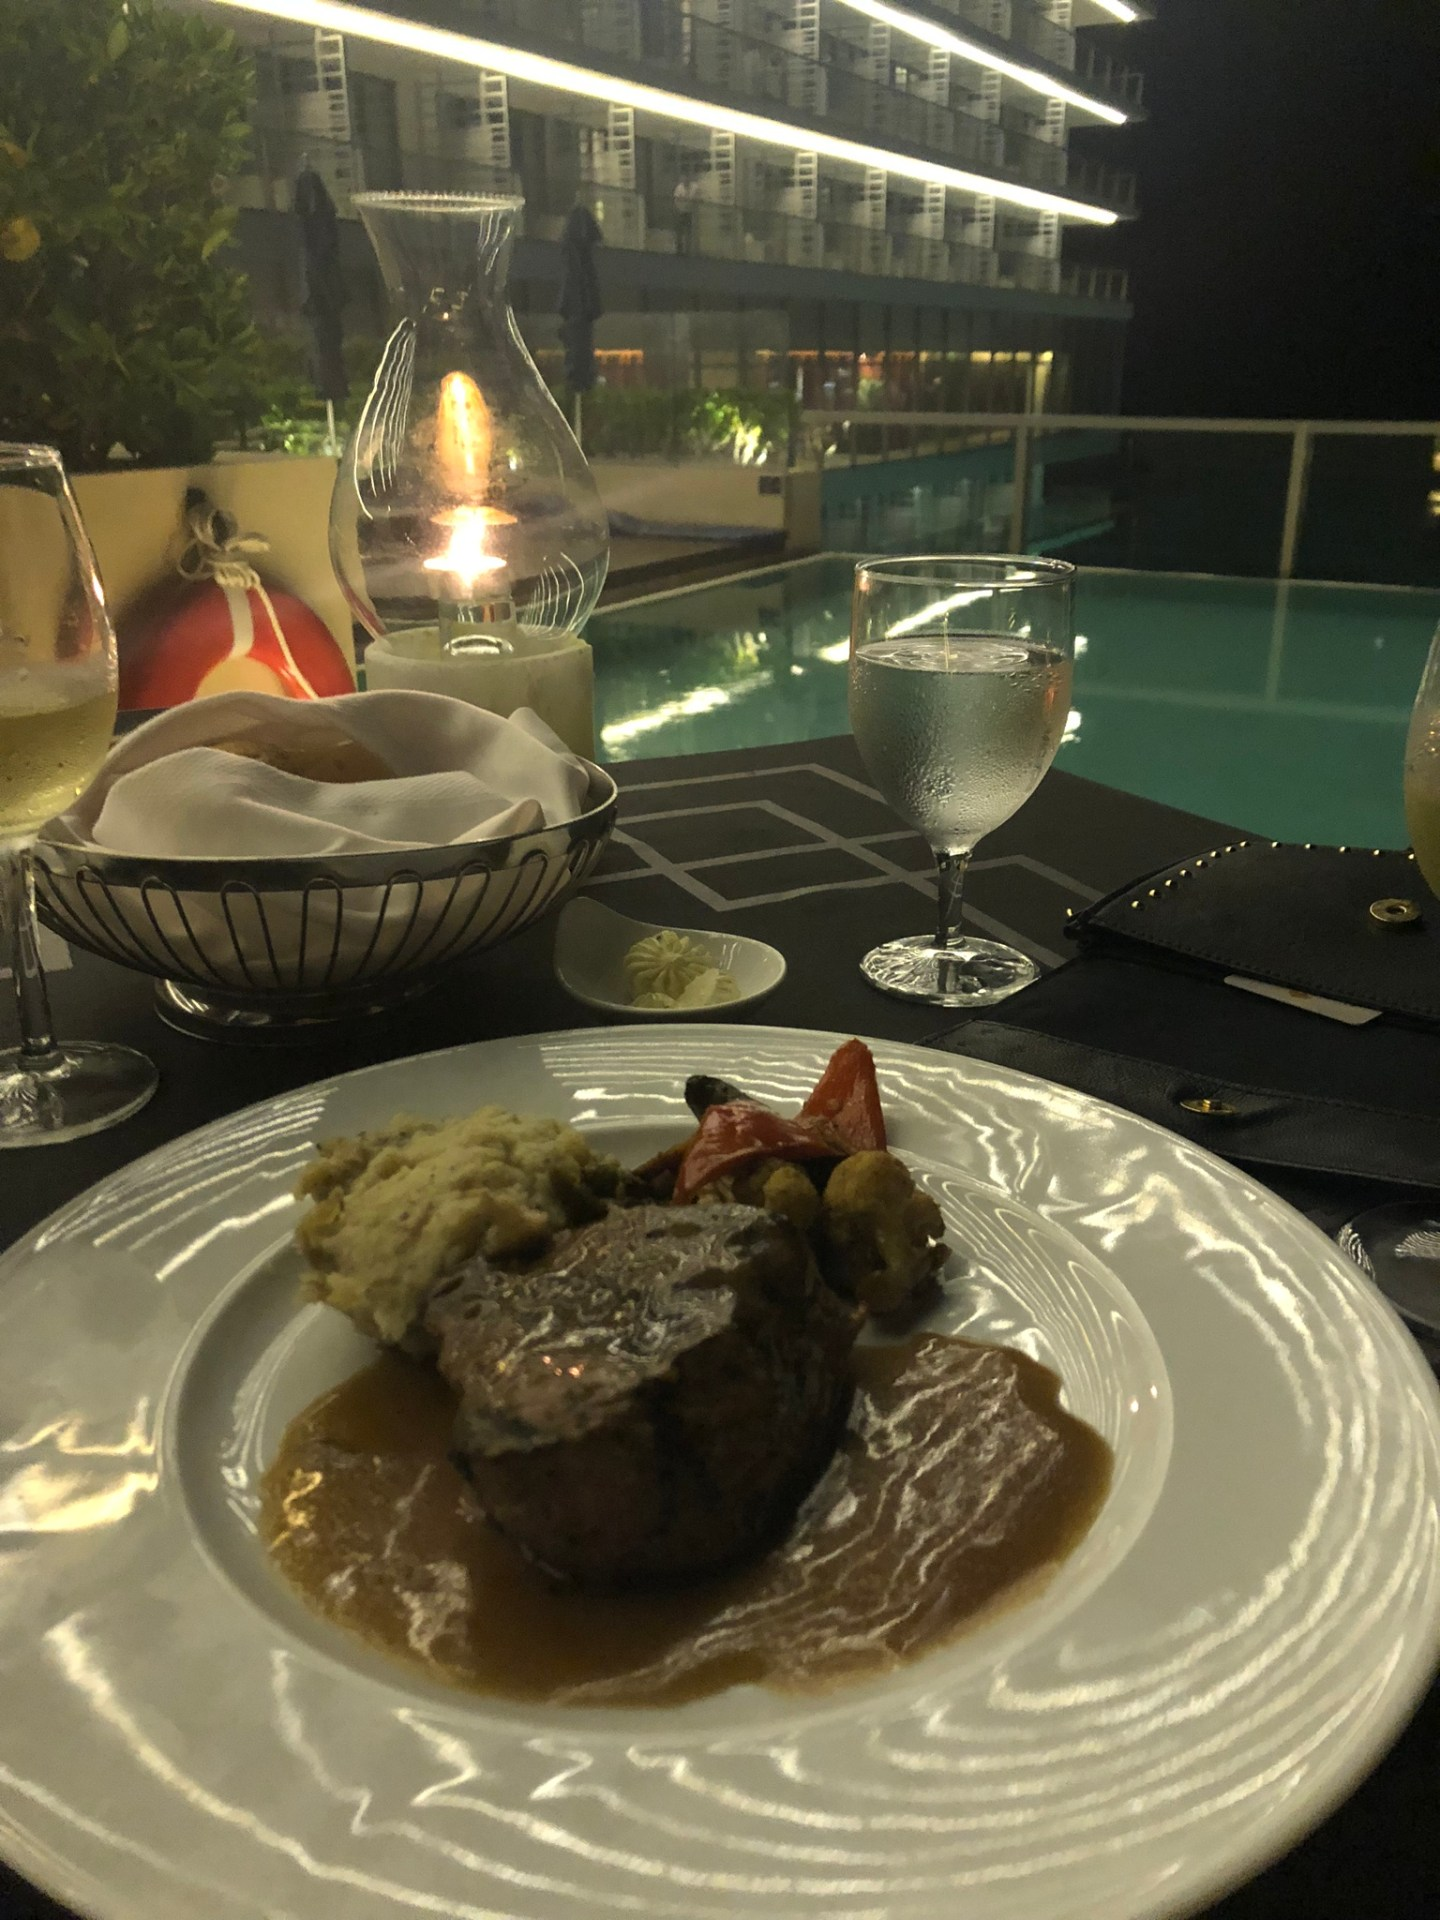 Fillet steak at Blue Water Grill, Cancun